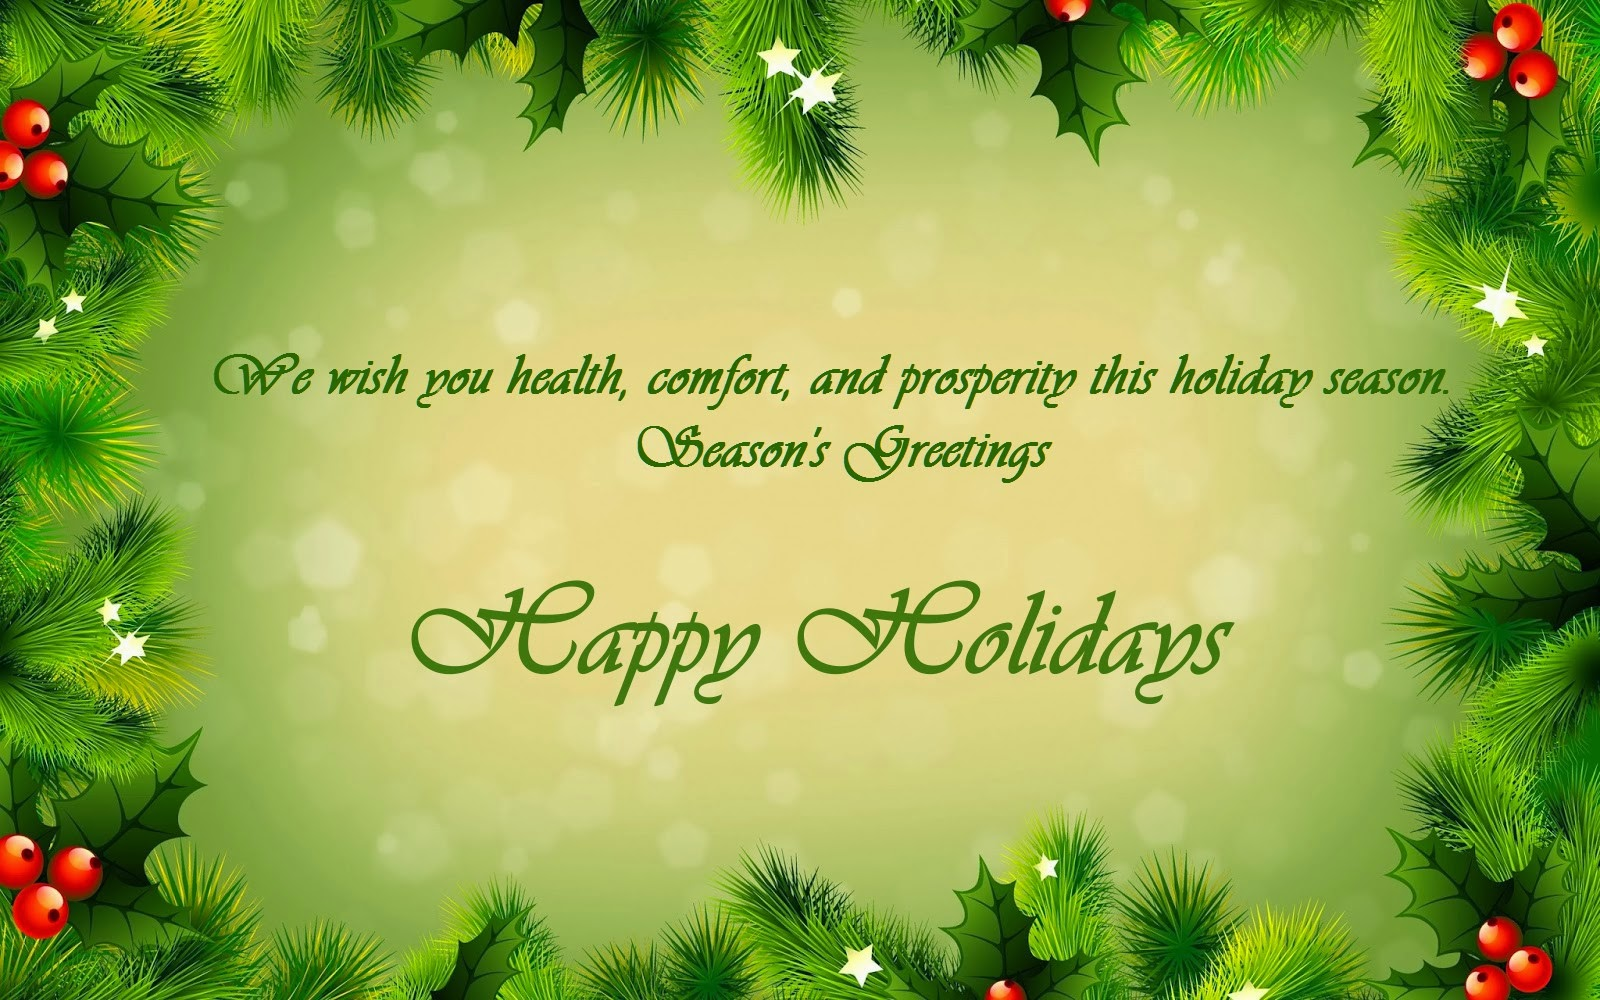 Happy Holidays Greetings Images Merry Christmas Images